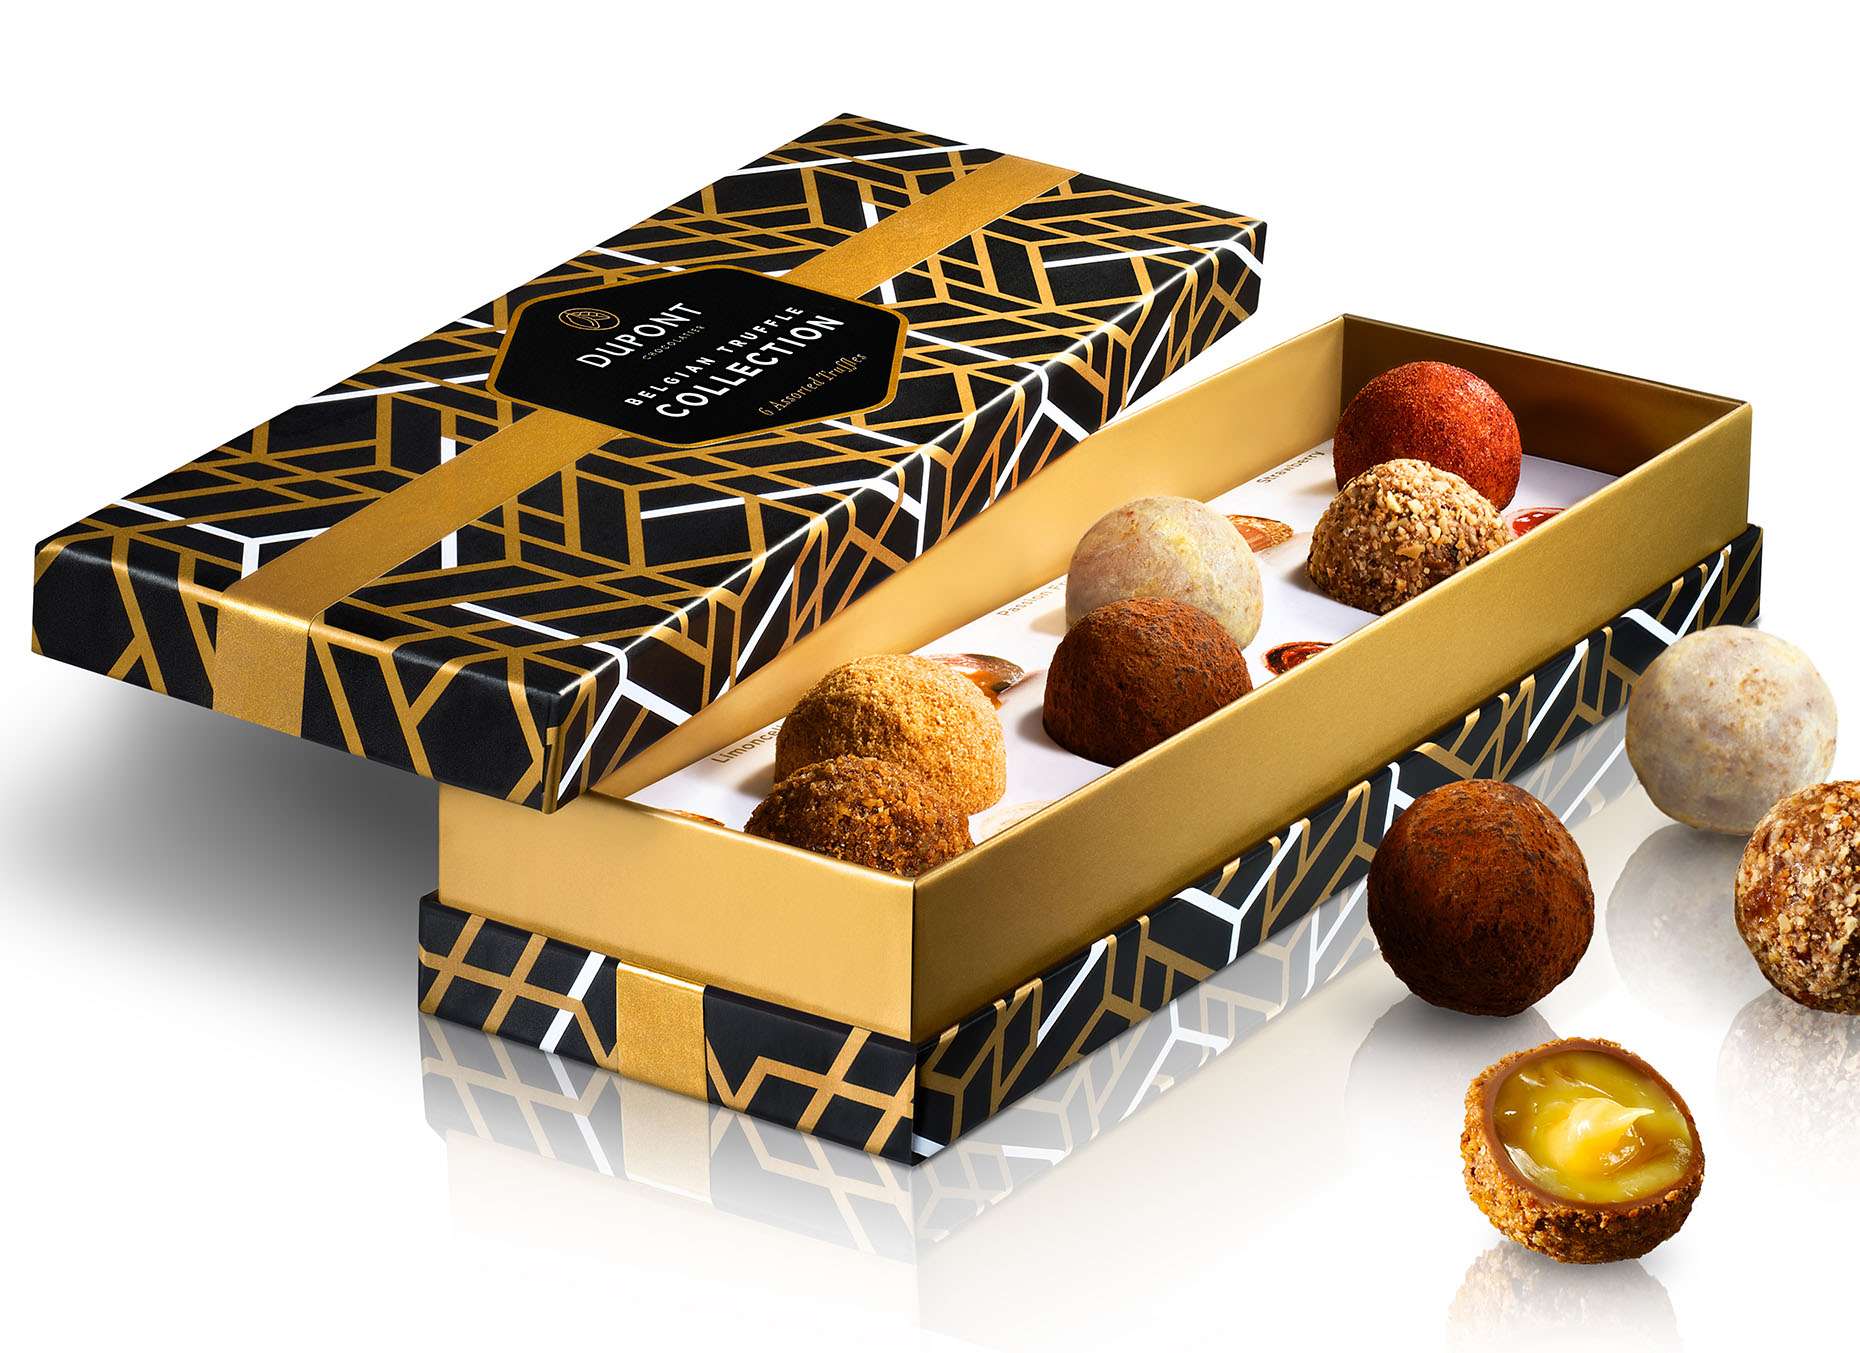 New-york-luxury-food-photography-belgium-truffles